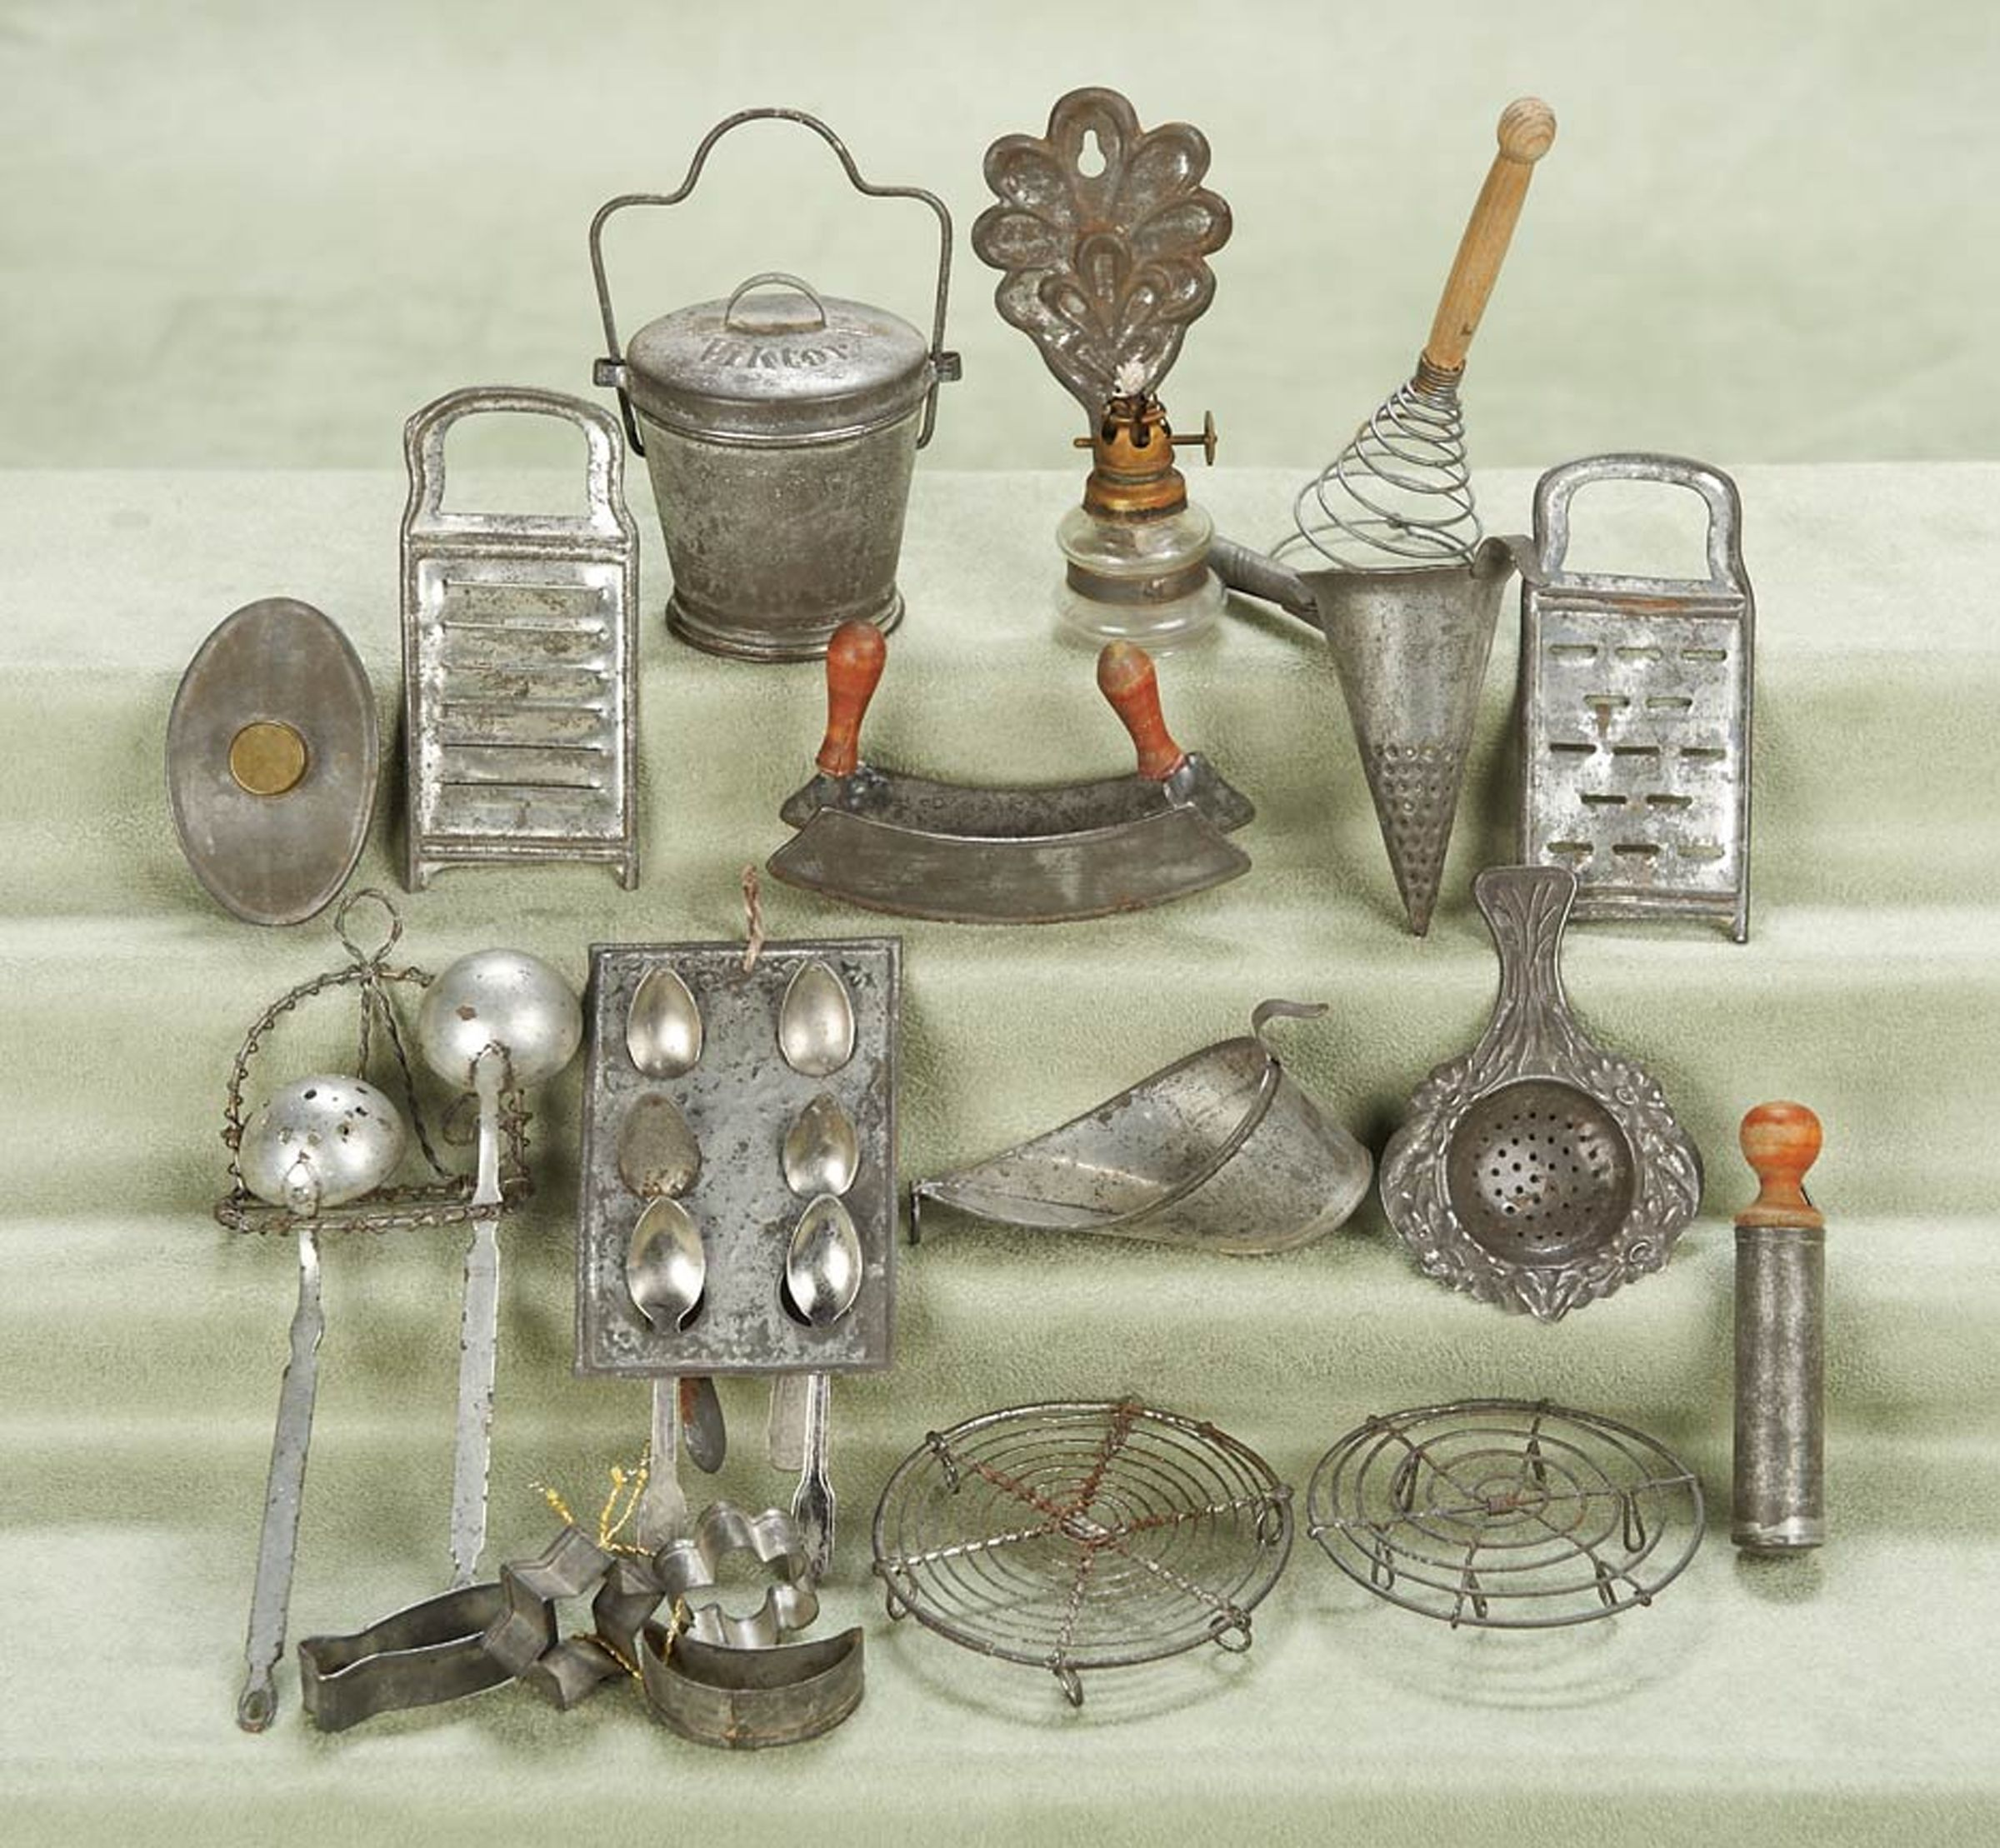 Kitchen Chairs For Cooking: Miniature Utensils